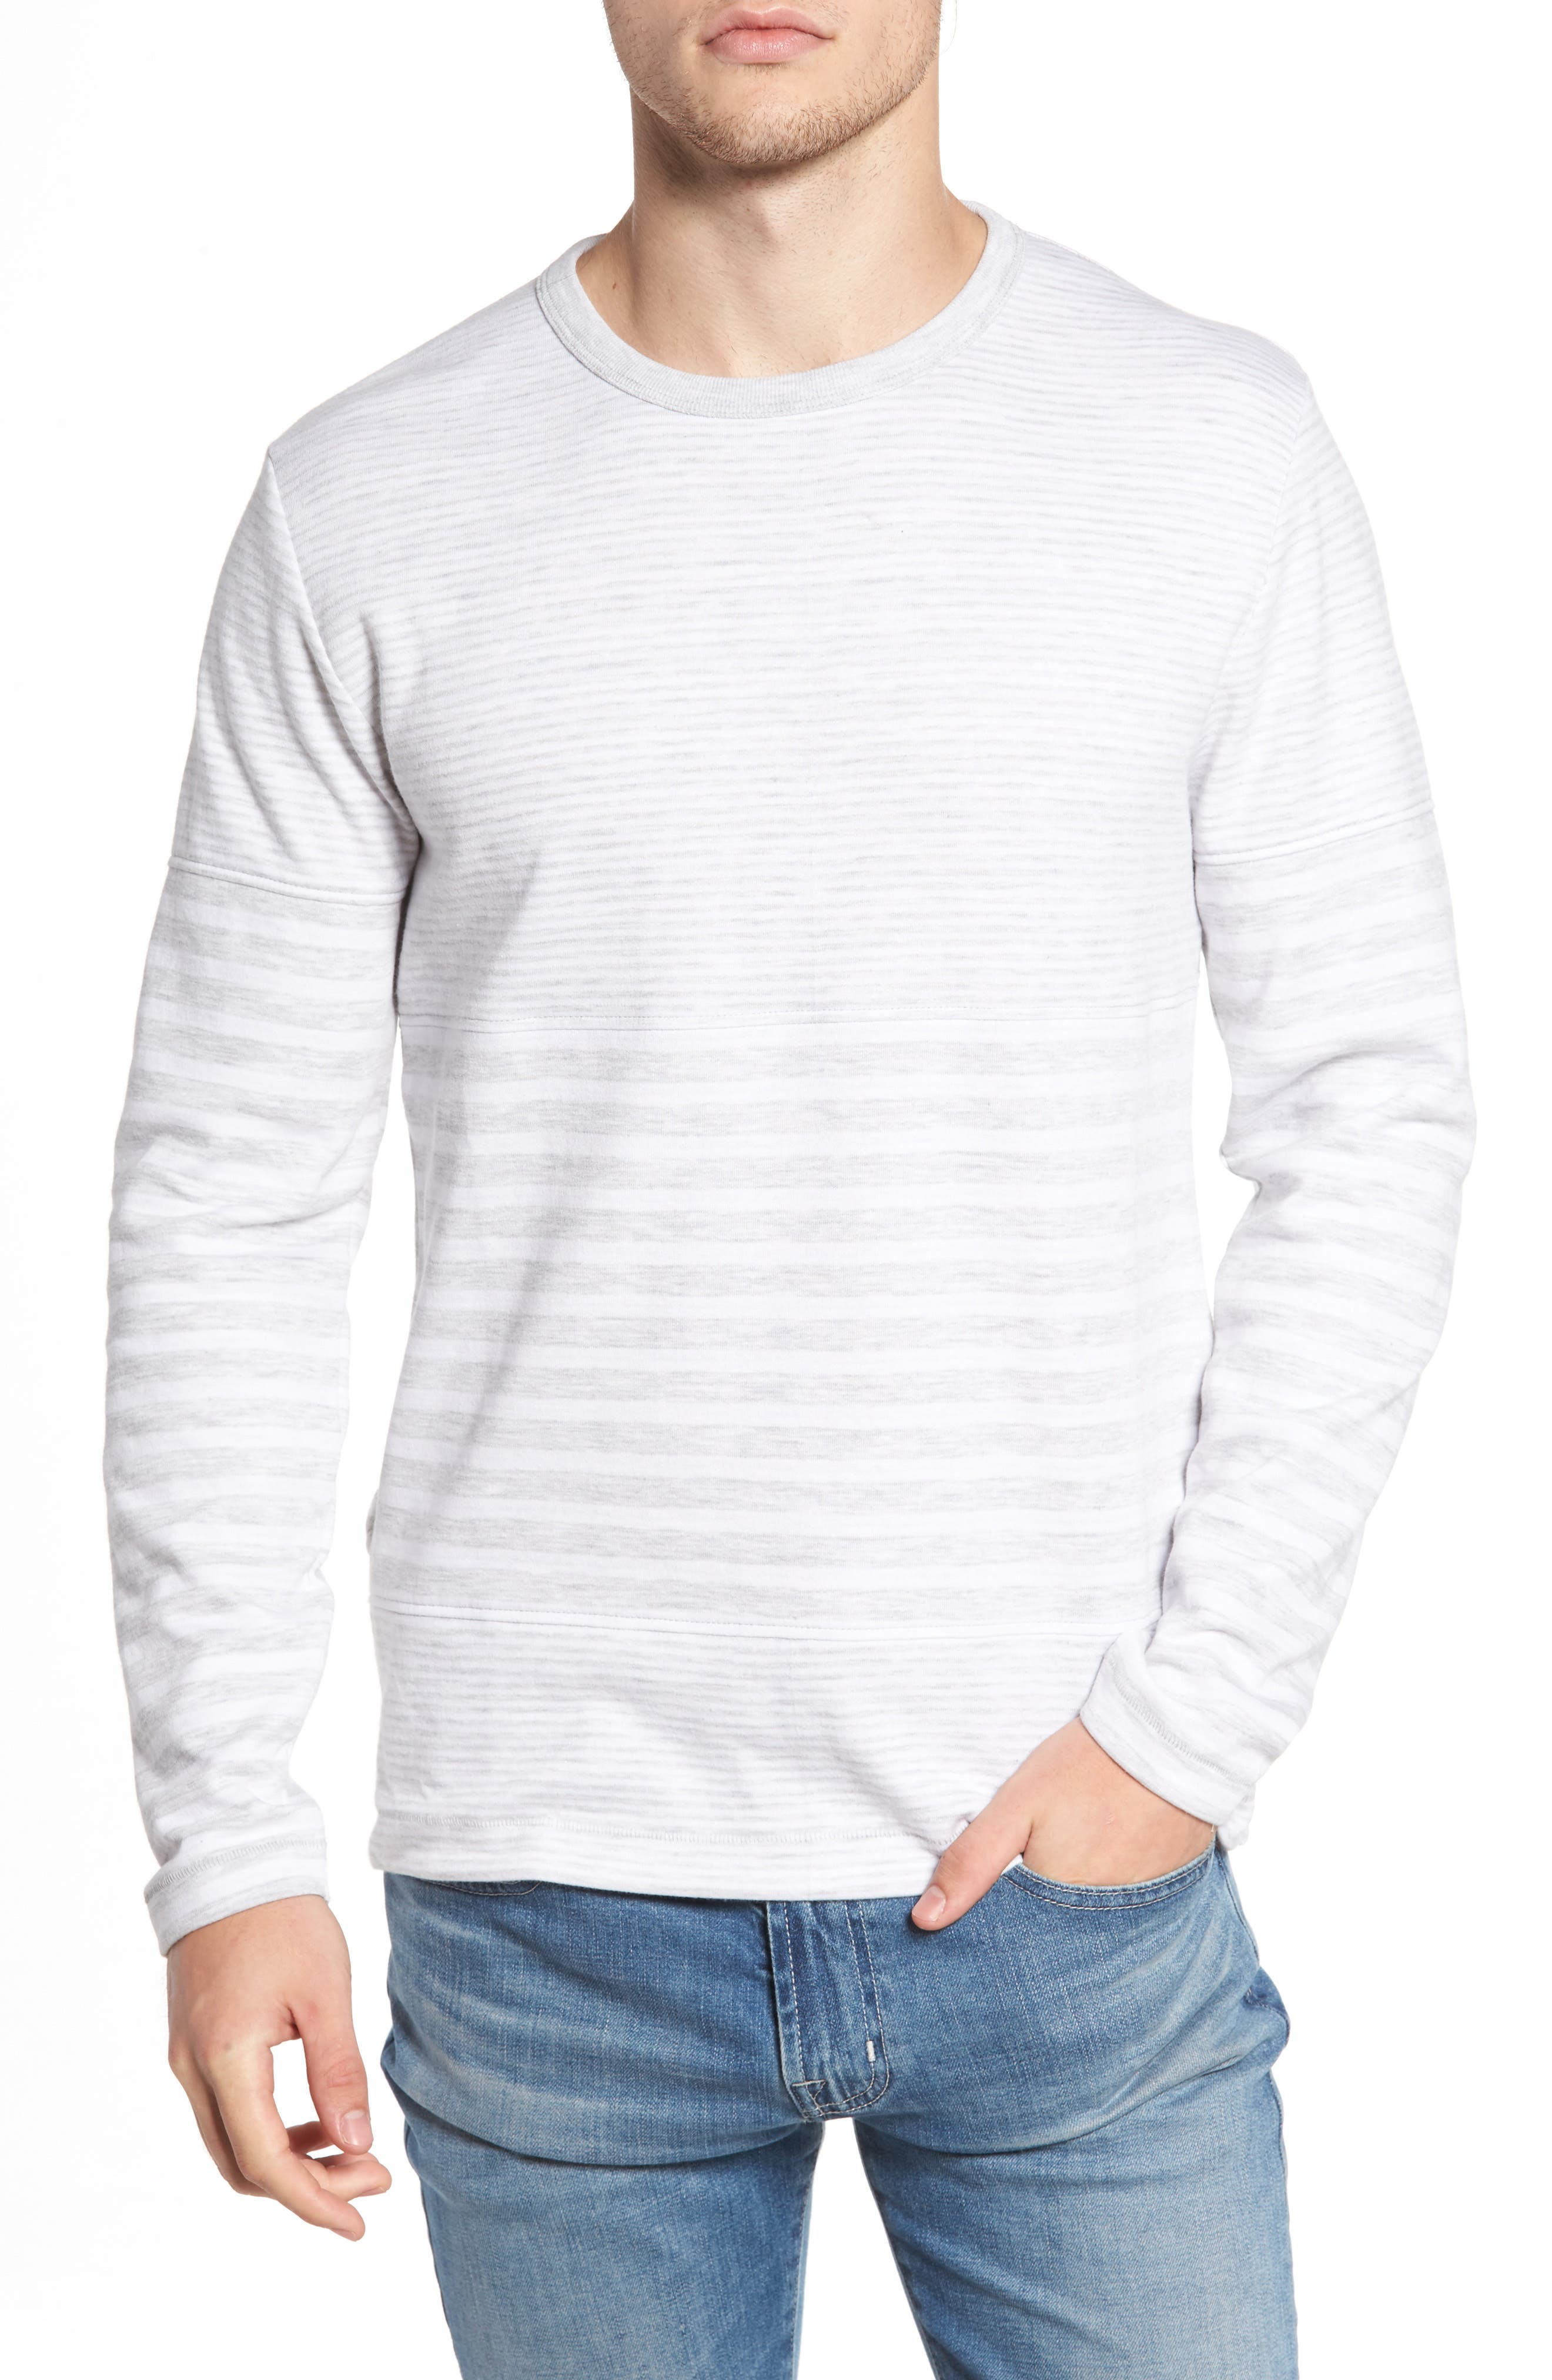 Main Image - French Connection Stripe Long Sleeve T-Shirt